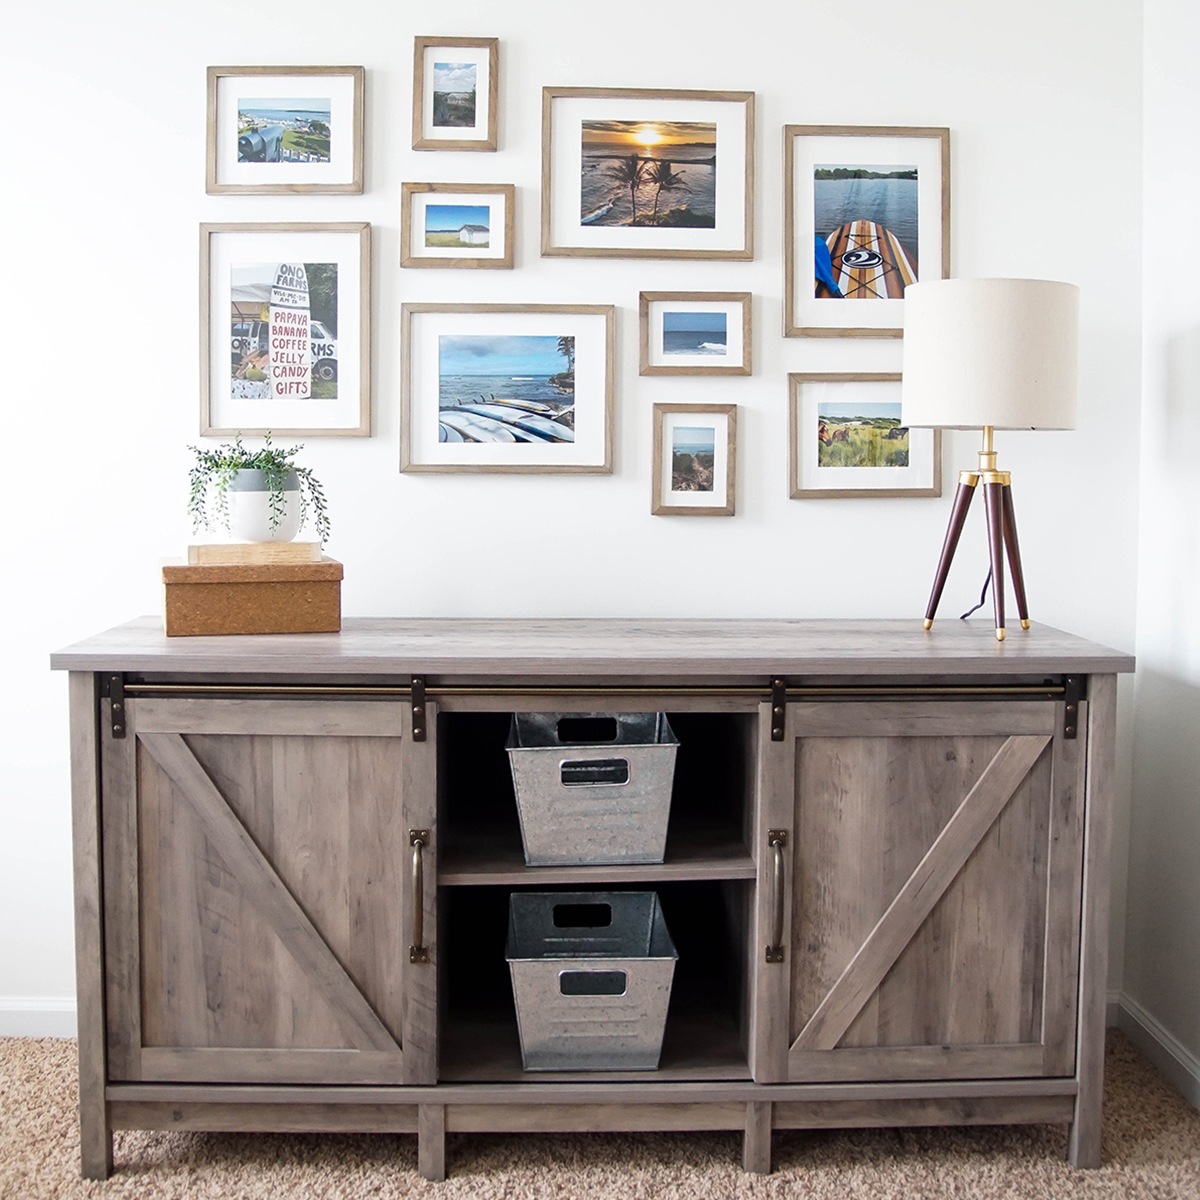 Modern farmhouse tv stand with a combination of solid wood picture frames hung above and stylish tripod table lamp. photo